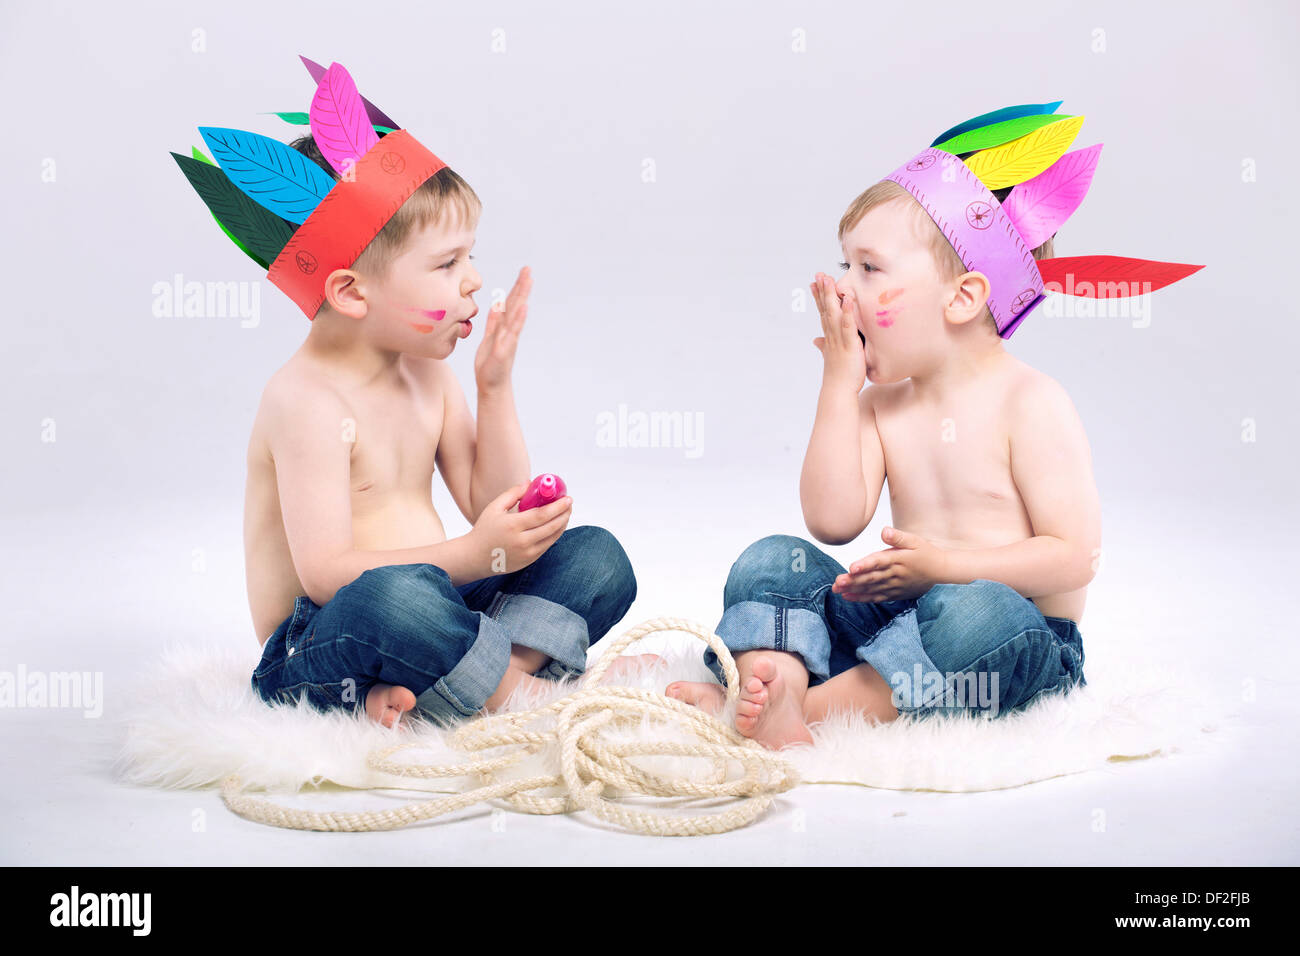 Young Indian boys with fancy colorful hats - Stock Image